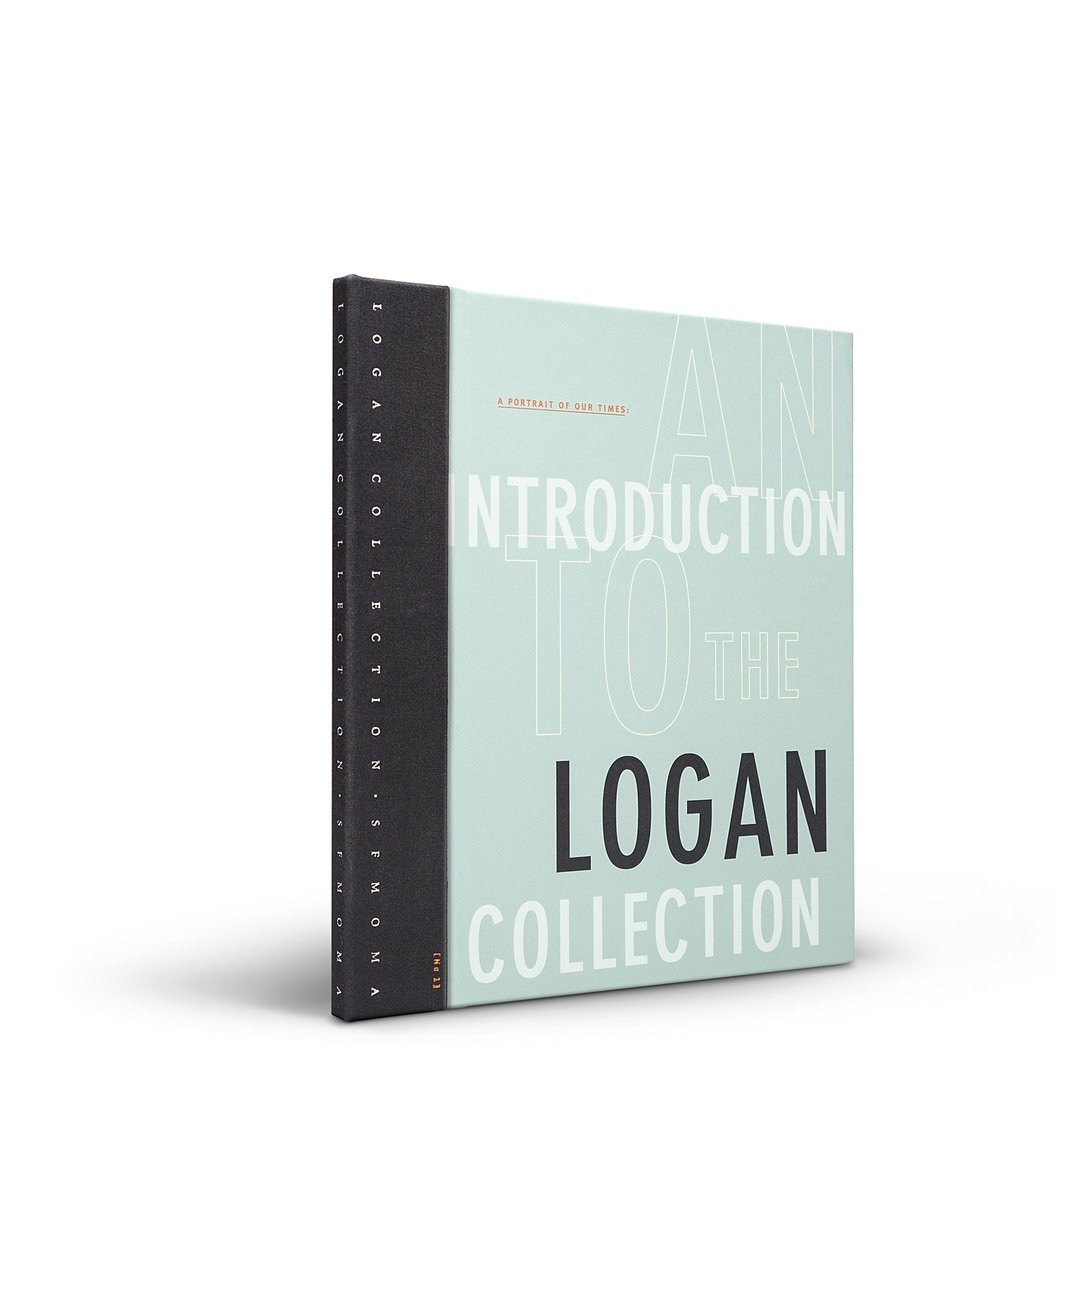 A Portrait of Our Times: An Introudction to the Logan Collection